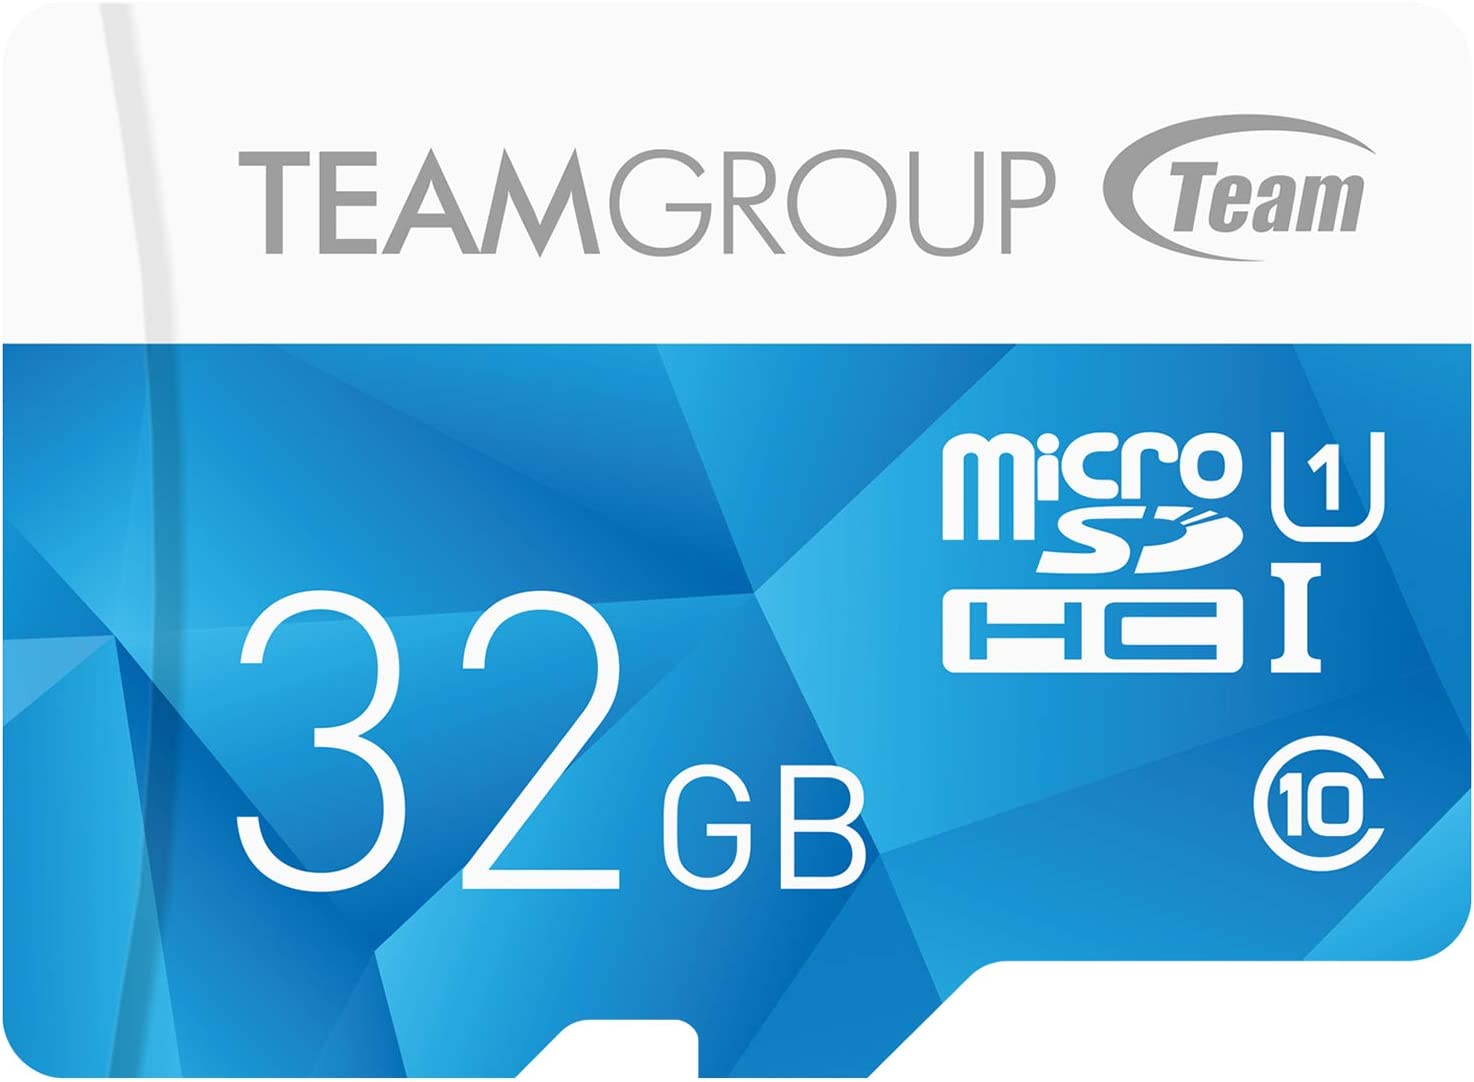 TEAMGROUP Color Card I 32GB MicroSDHC Class 10 UHS-I U1 High Speed Flash Memory Card - Read up to 80MB/s for Full HD Camera Recording Shooting, Smartphone (TCUSDH32GUHS02)